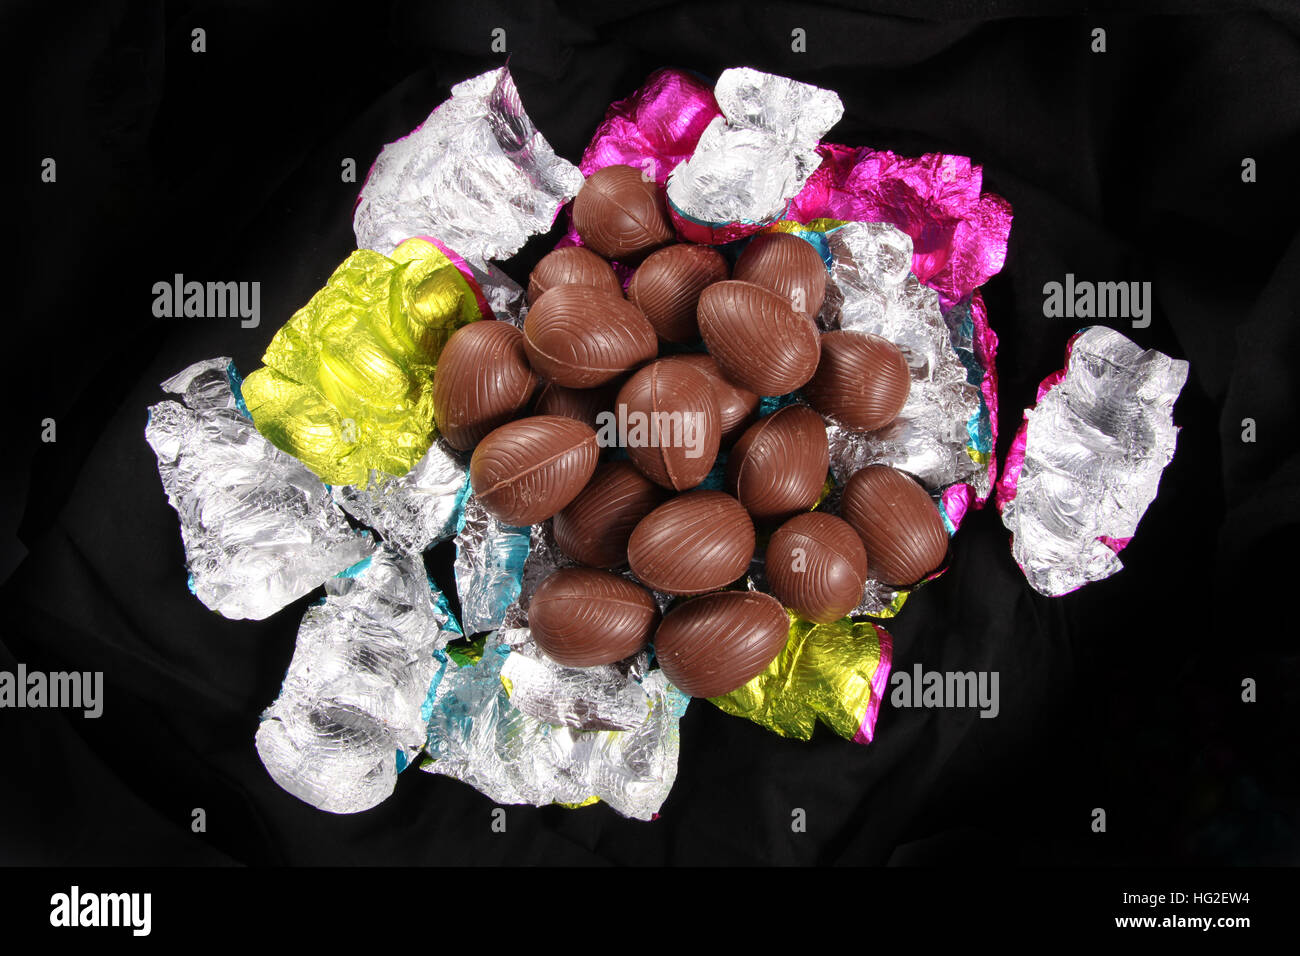 Pile of Chocolate easter eggs unwrapped from the colorful foil wrappers against a black background. - Stock Image